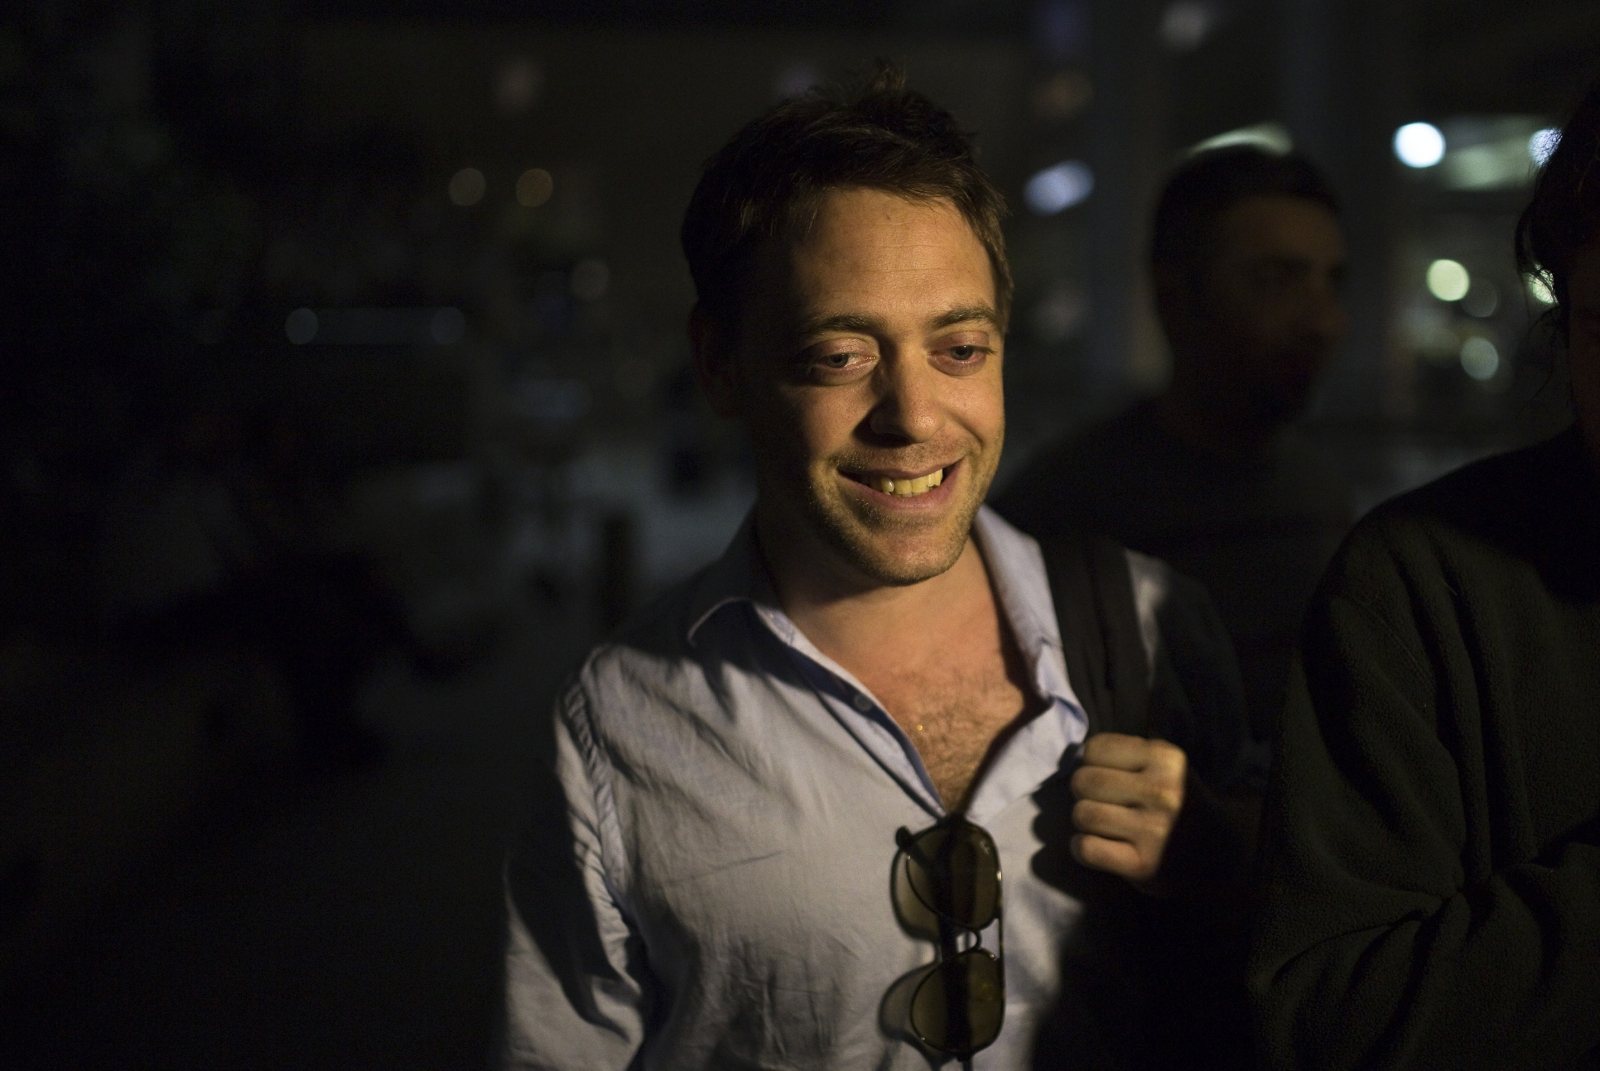 Damian Pachter, a journalist with the Buenos Aires Herald, is seen after landing at Ben Gurion International Airport near Tel Aviv